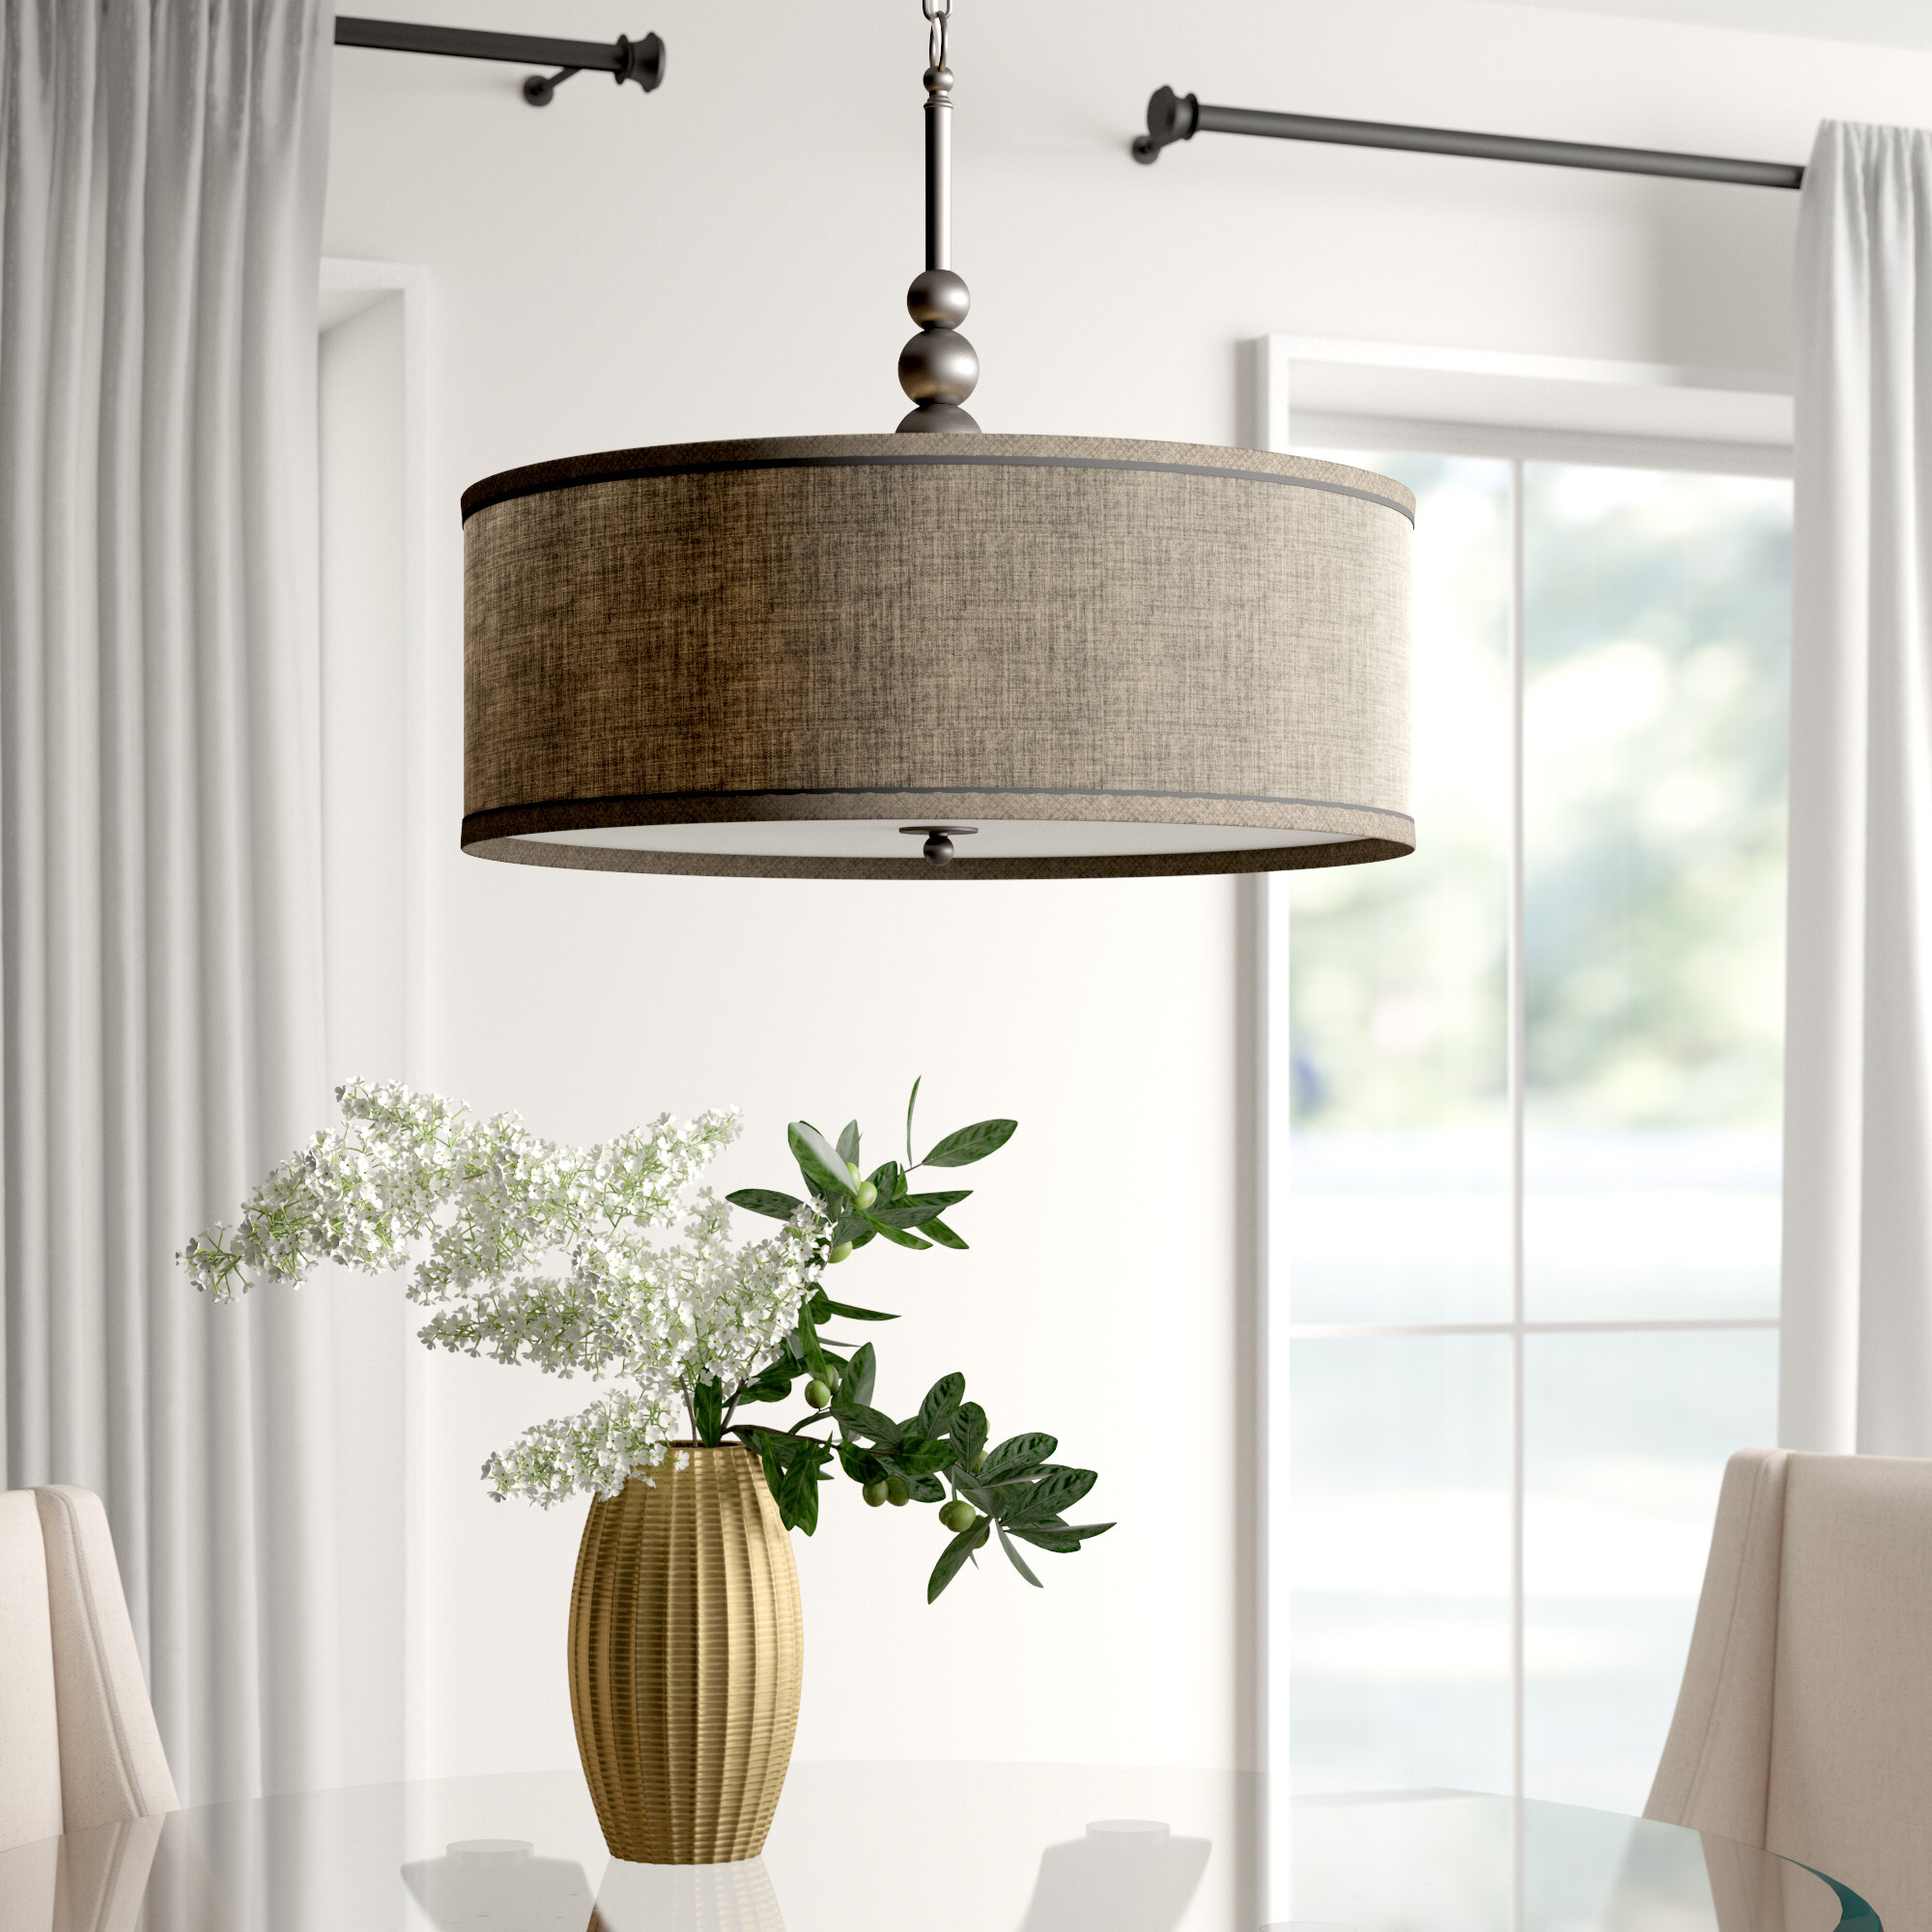 Well Liked Wade Logan Burslem 3 Light Single Drum Pendant & Reviews For Burslem 3 Light Single Drum Pendants (View 3 of 20)